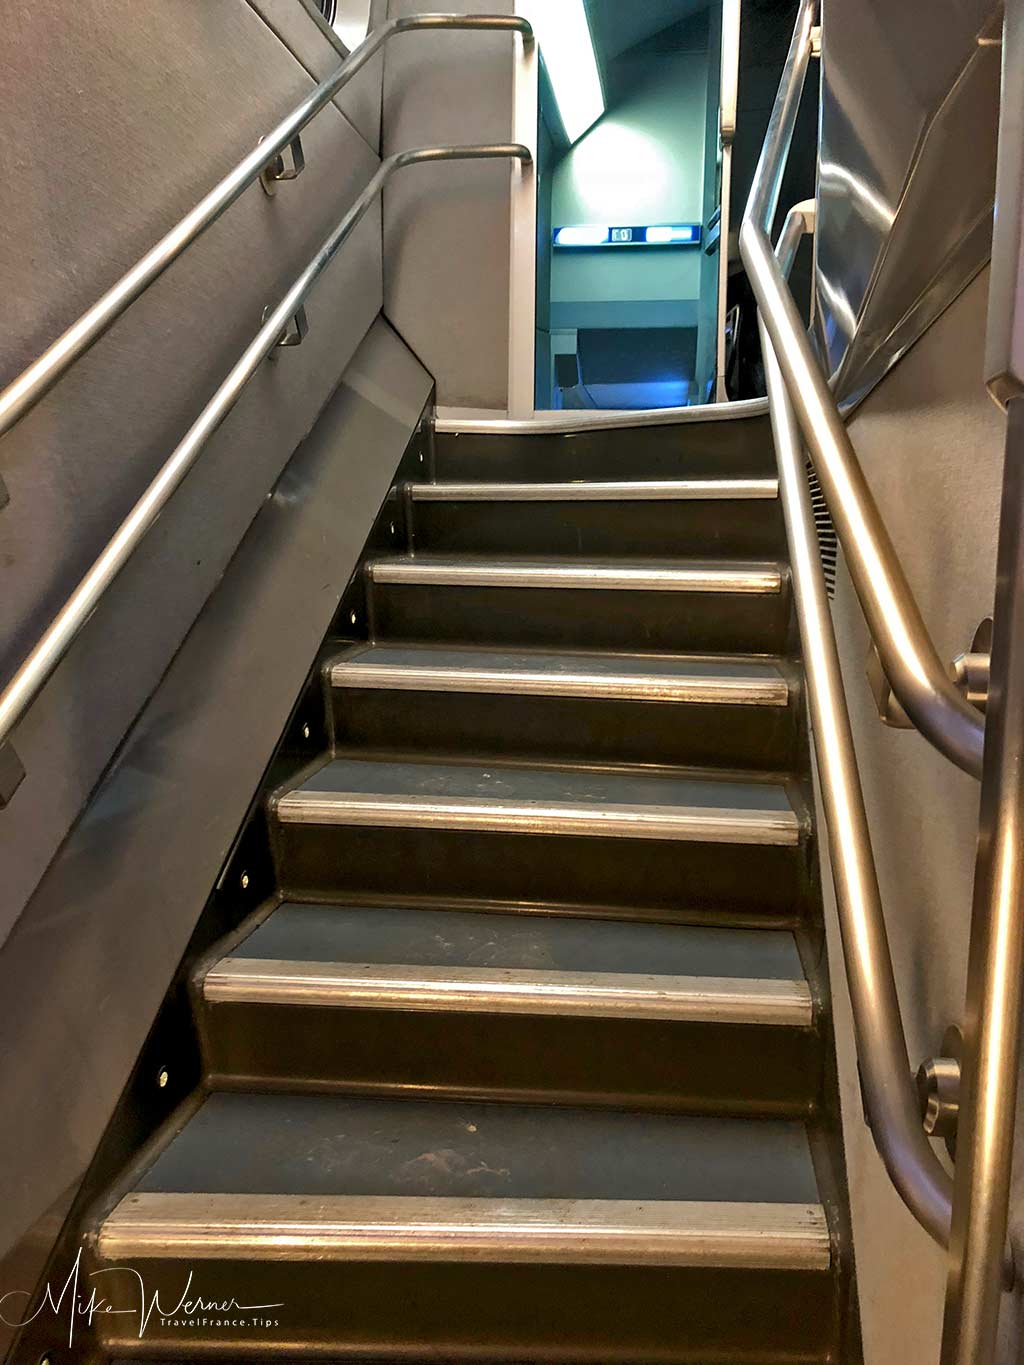 Stairs leading to the upper level of a TGV train